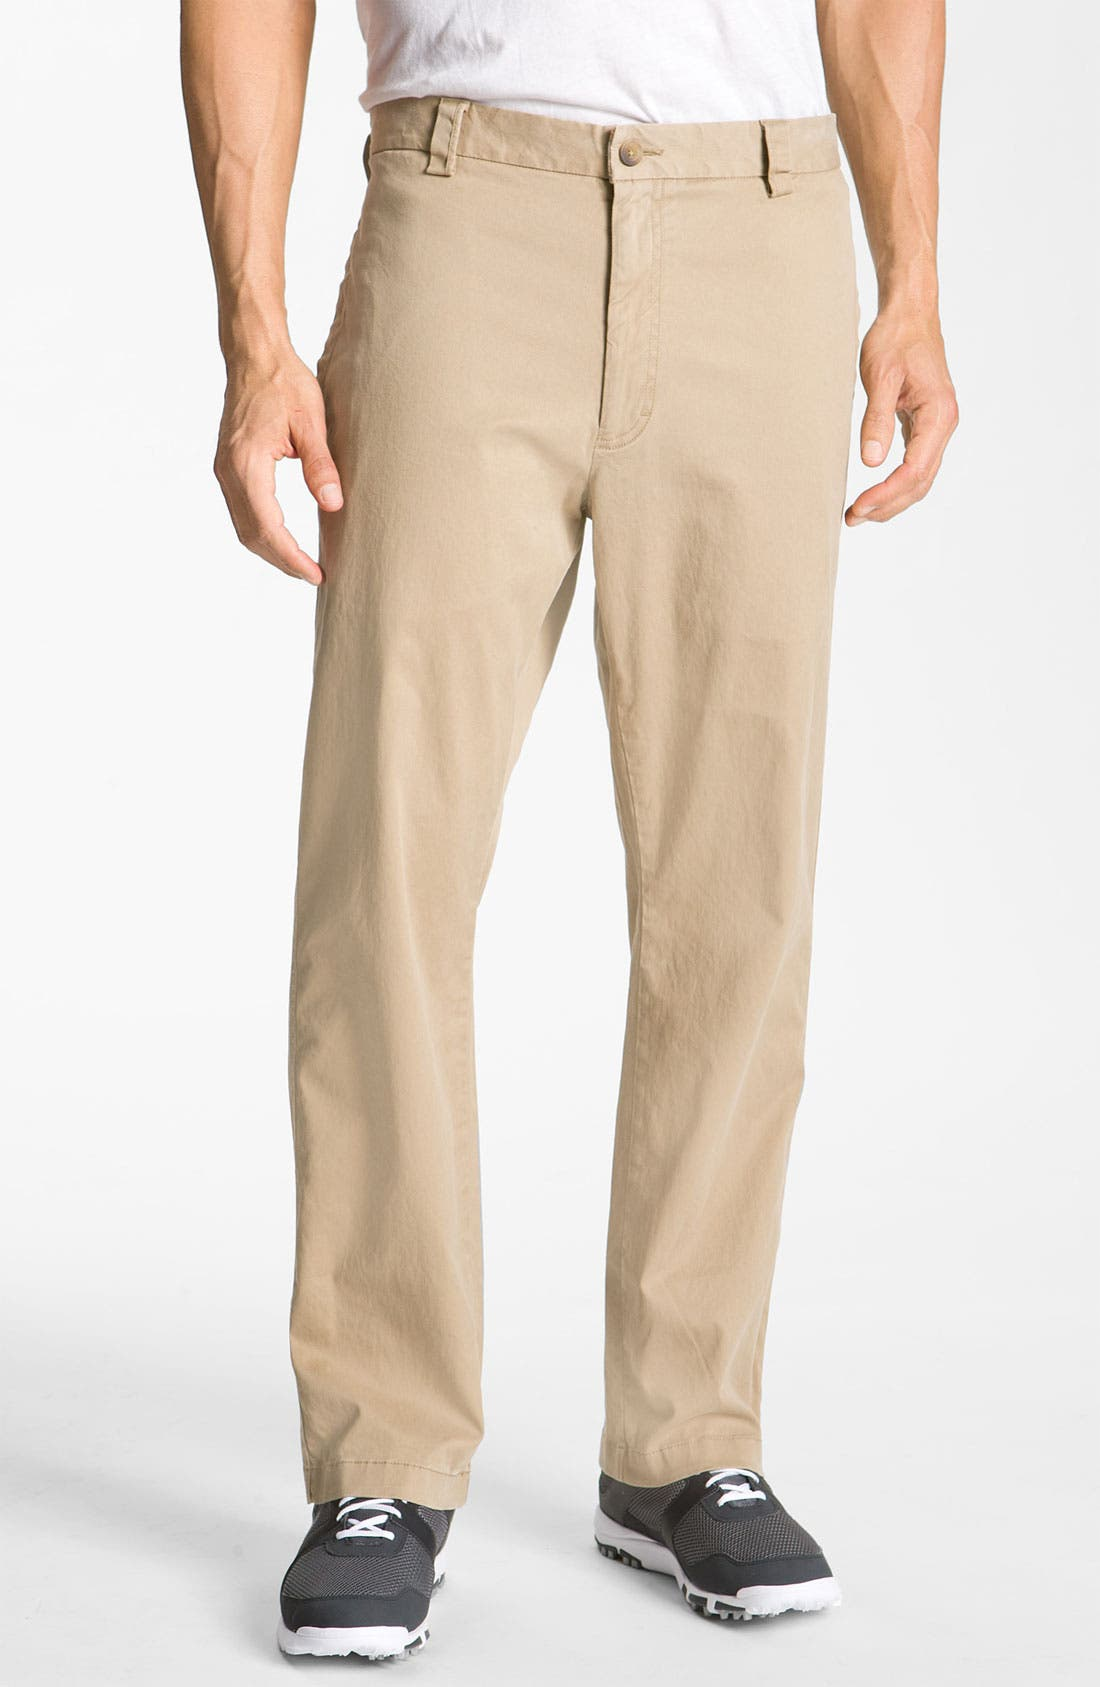 Alternate Image 1 Selected - Cutter & Buck 'Fremont' Chinos (Big & Tall)